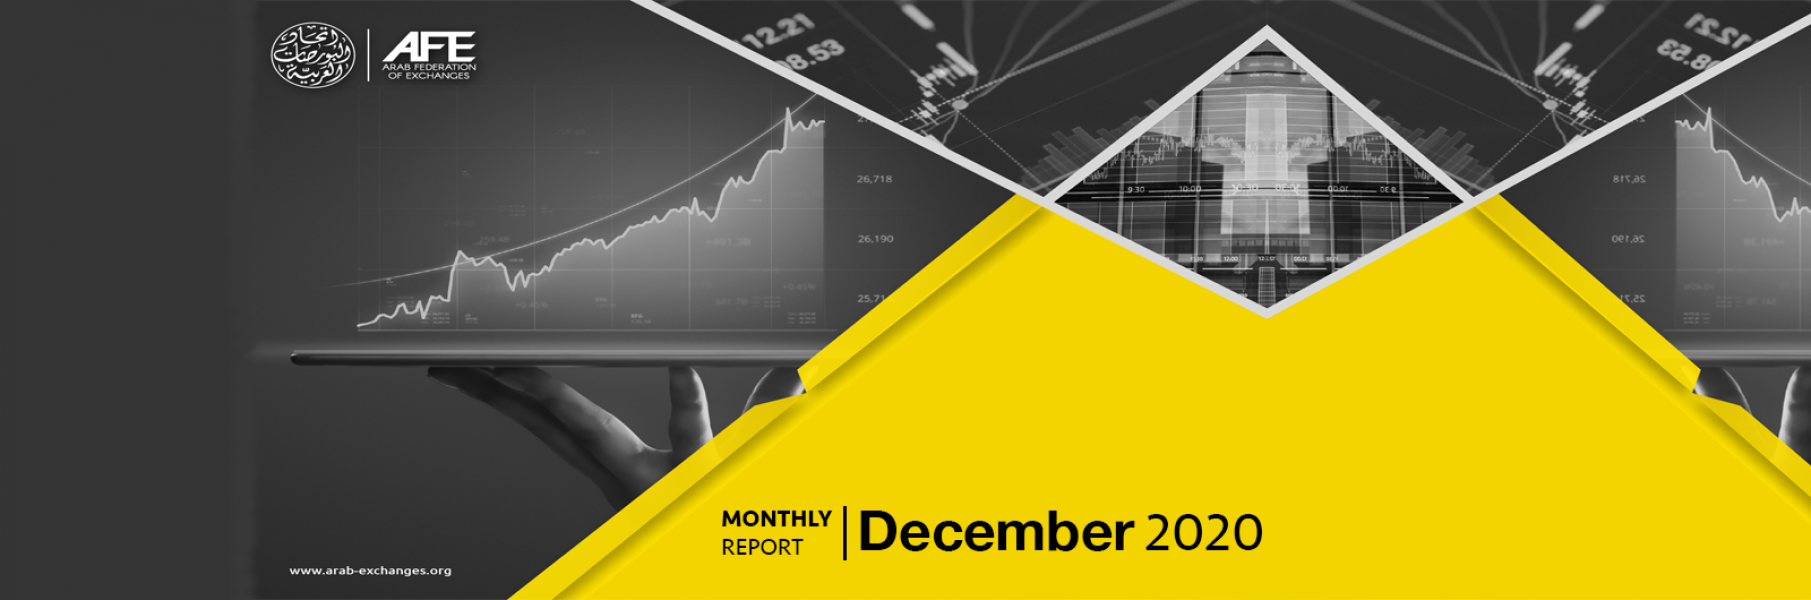 december monthly report